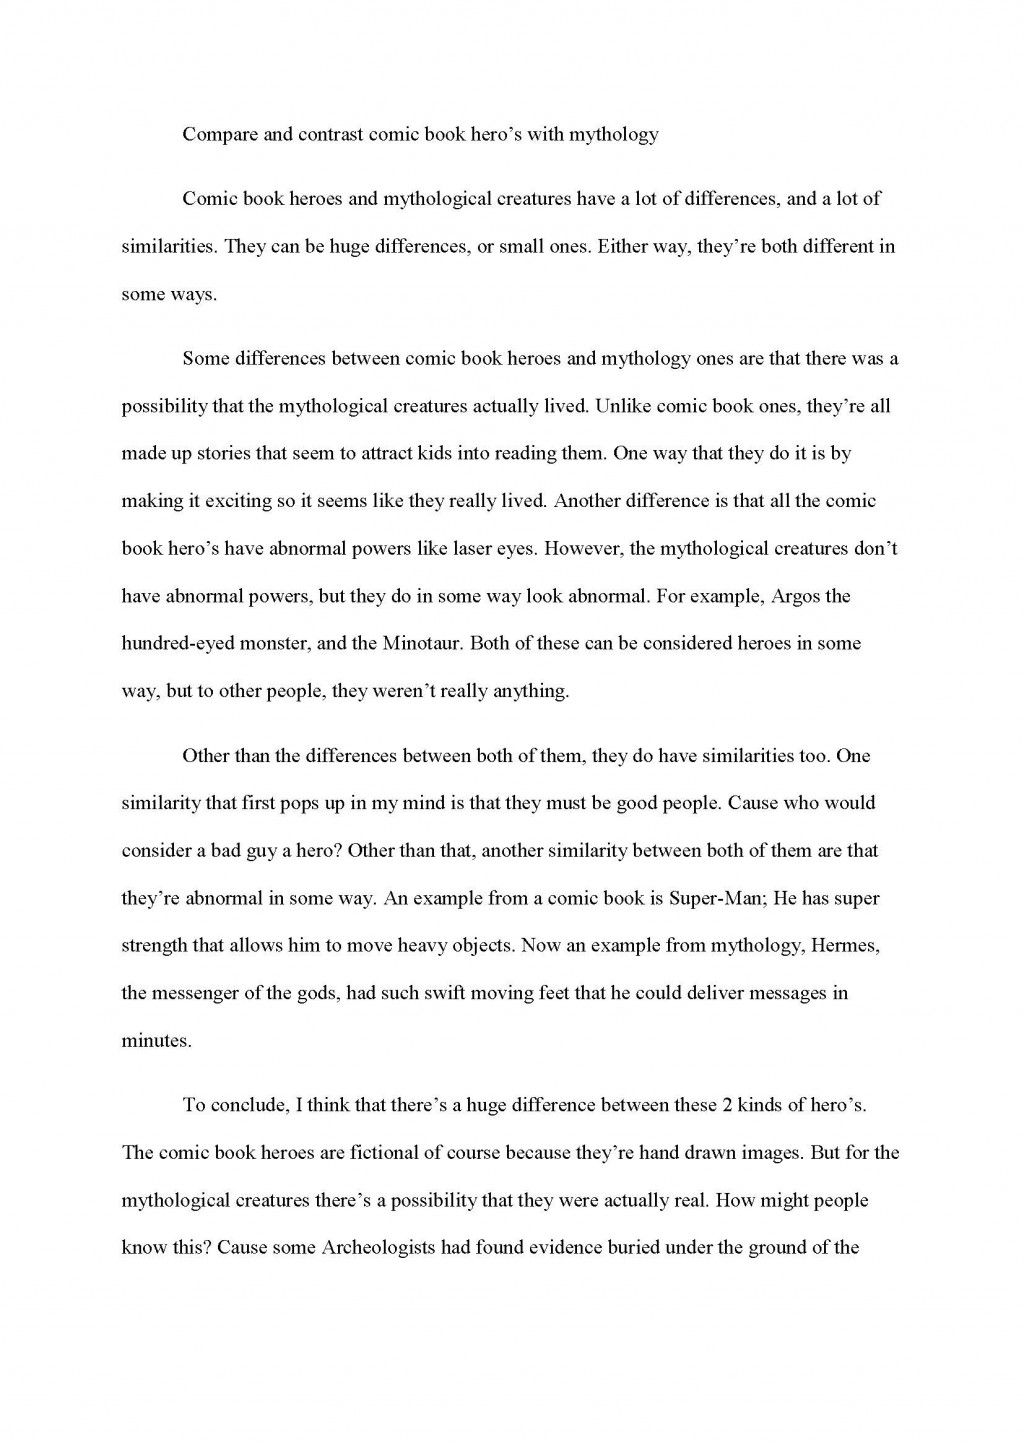 020 Compare And Contrast Essay Sample Example Uc Imposing Essays Prompt 1 6 3 Large